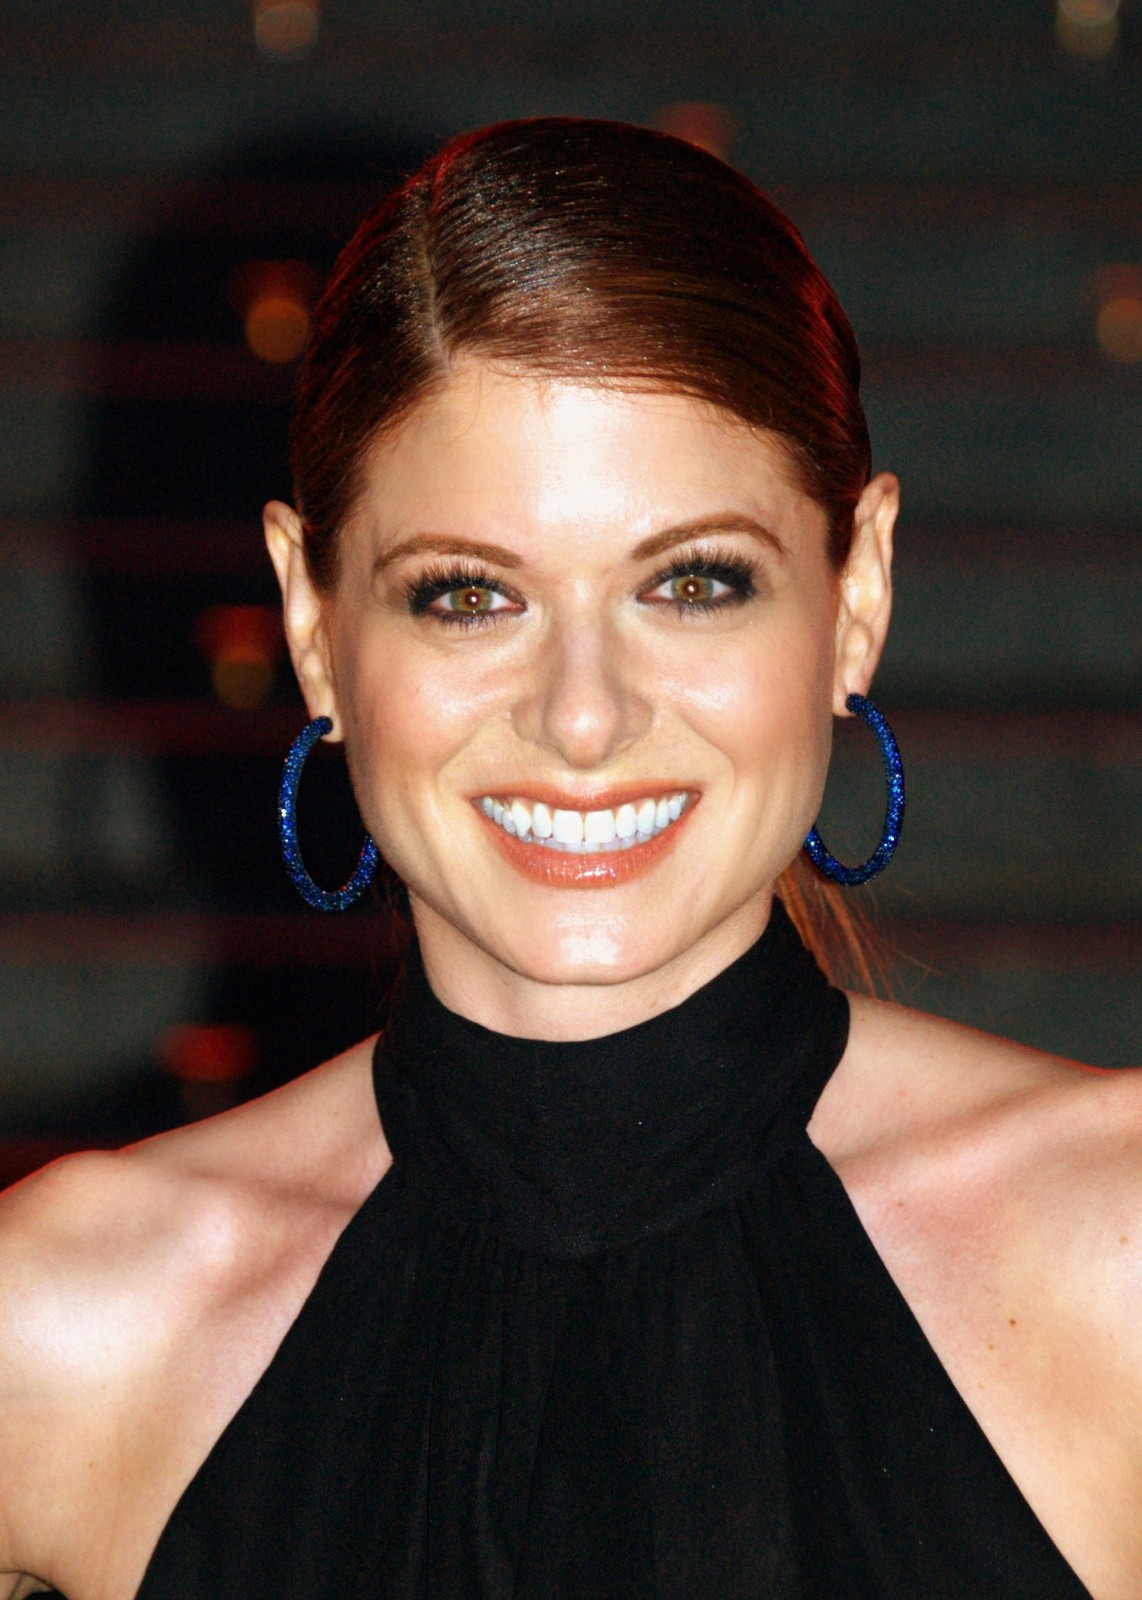 Debra Messing - An American Actress-2457